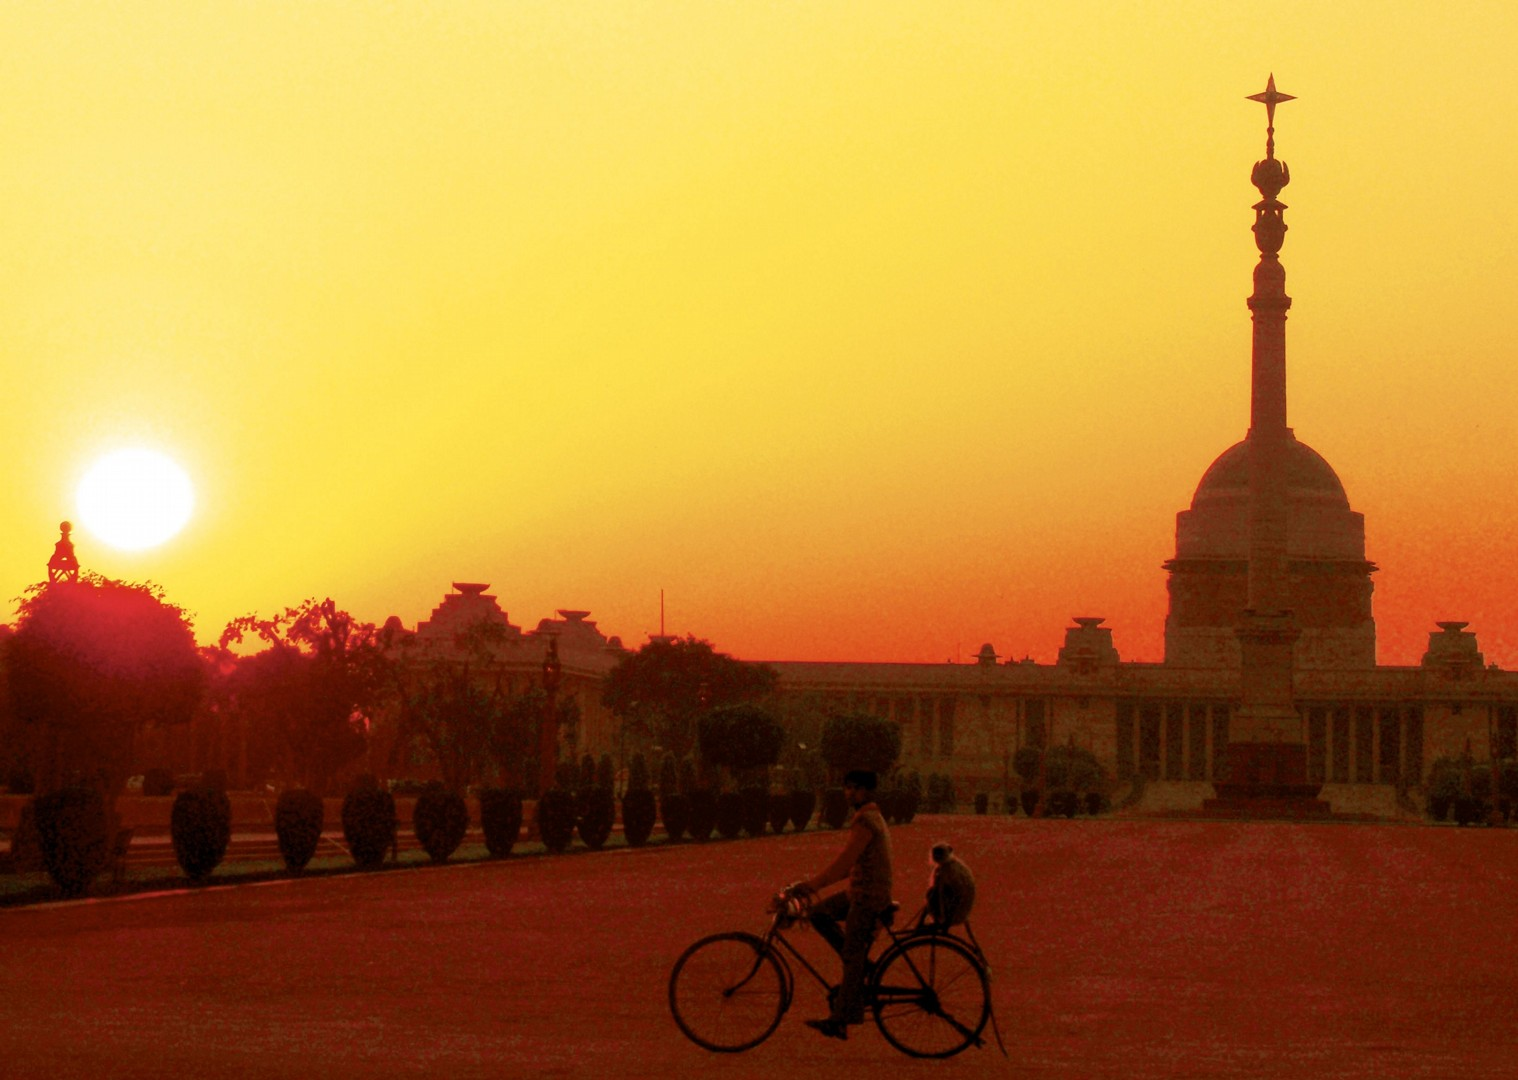 cycling-holiday-adventure-rajastan-india-temple-monkey.jpg - India - Palaces and Lakes of Rajasthan - Cycling Adventures